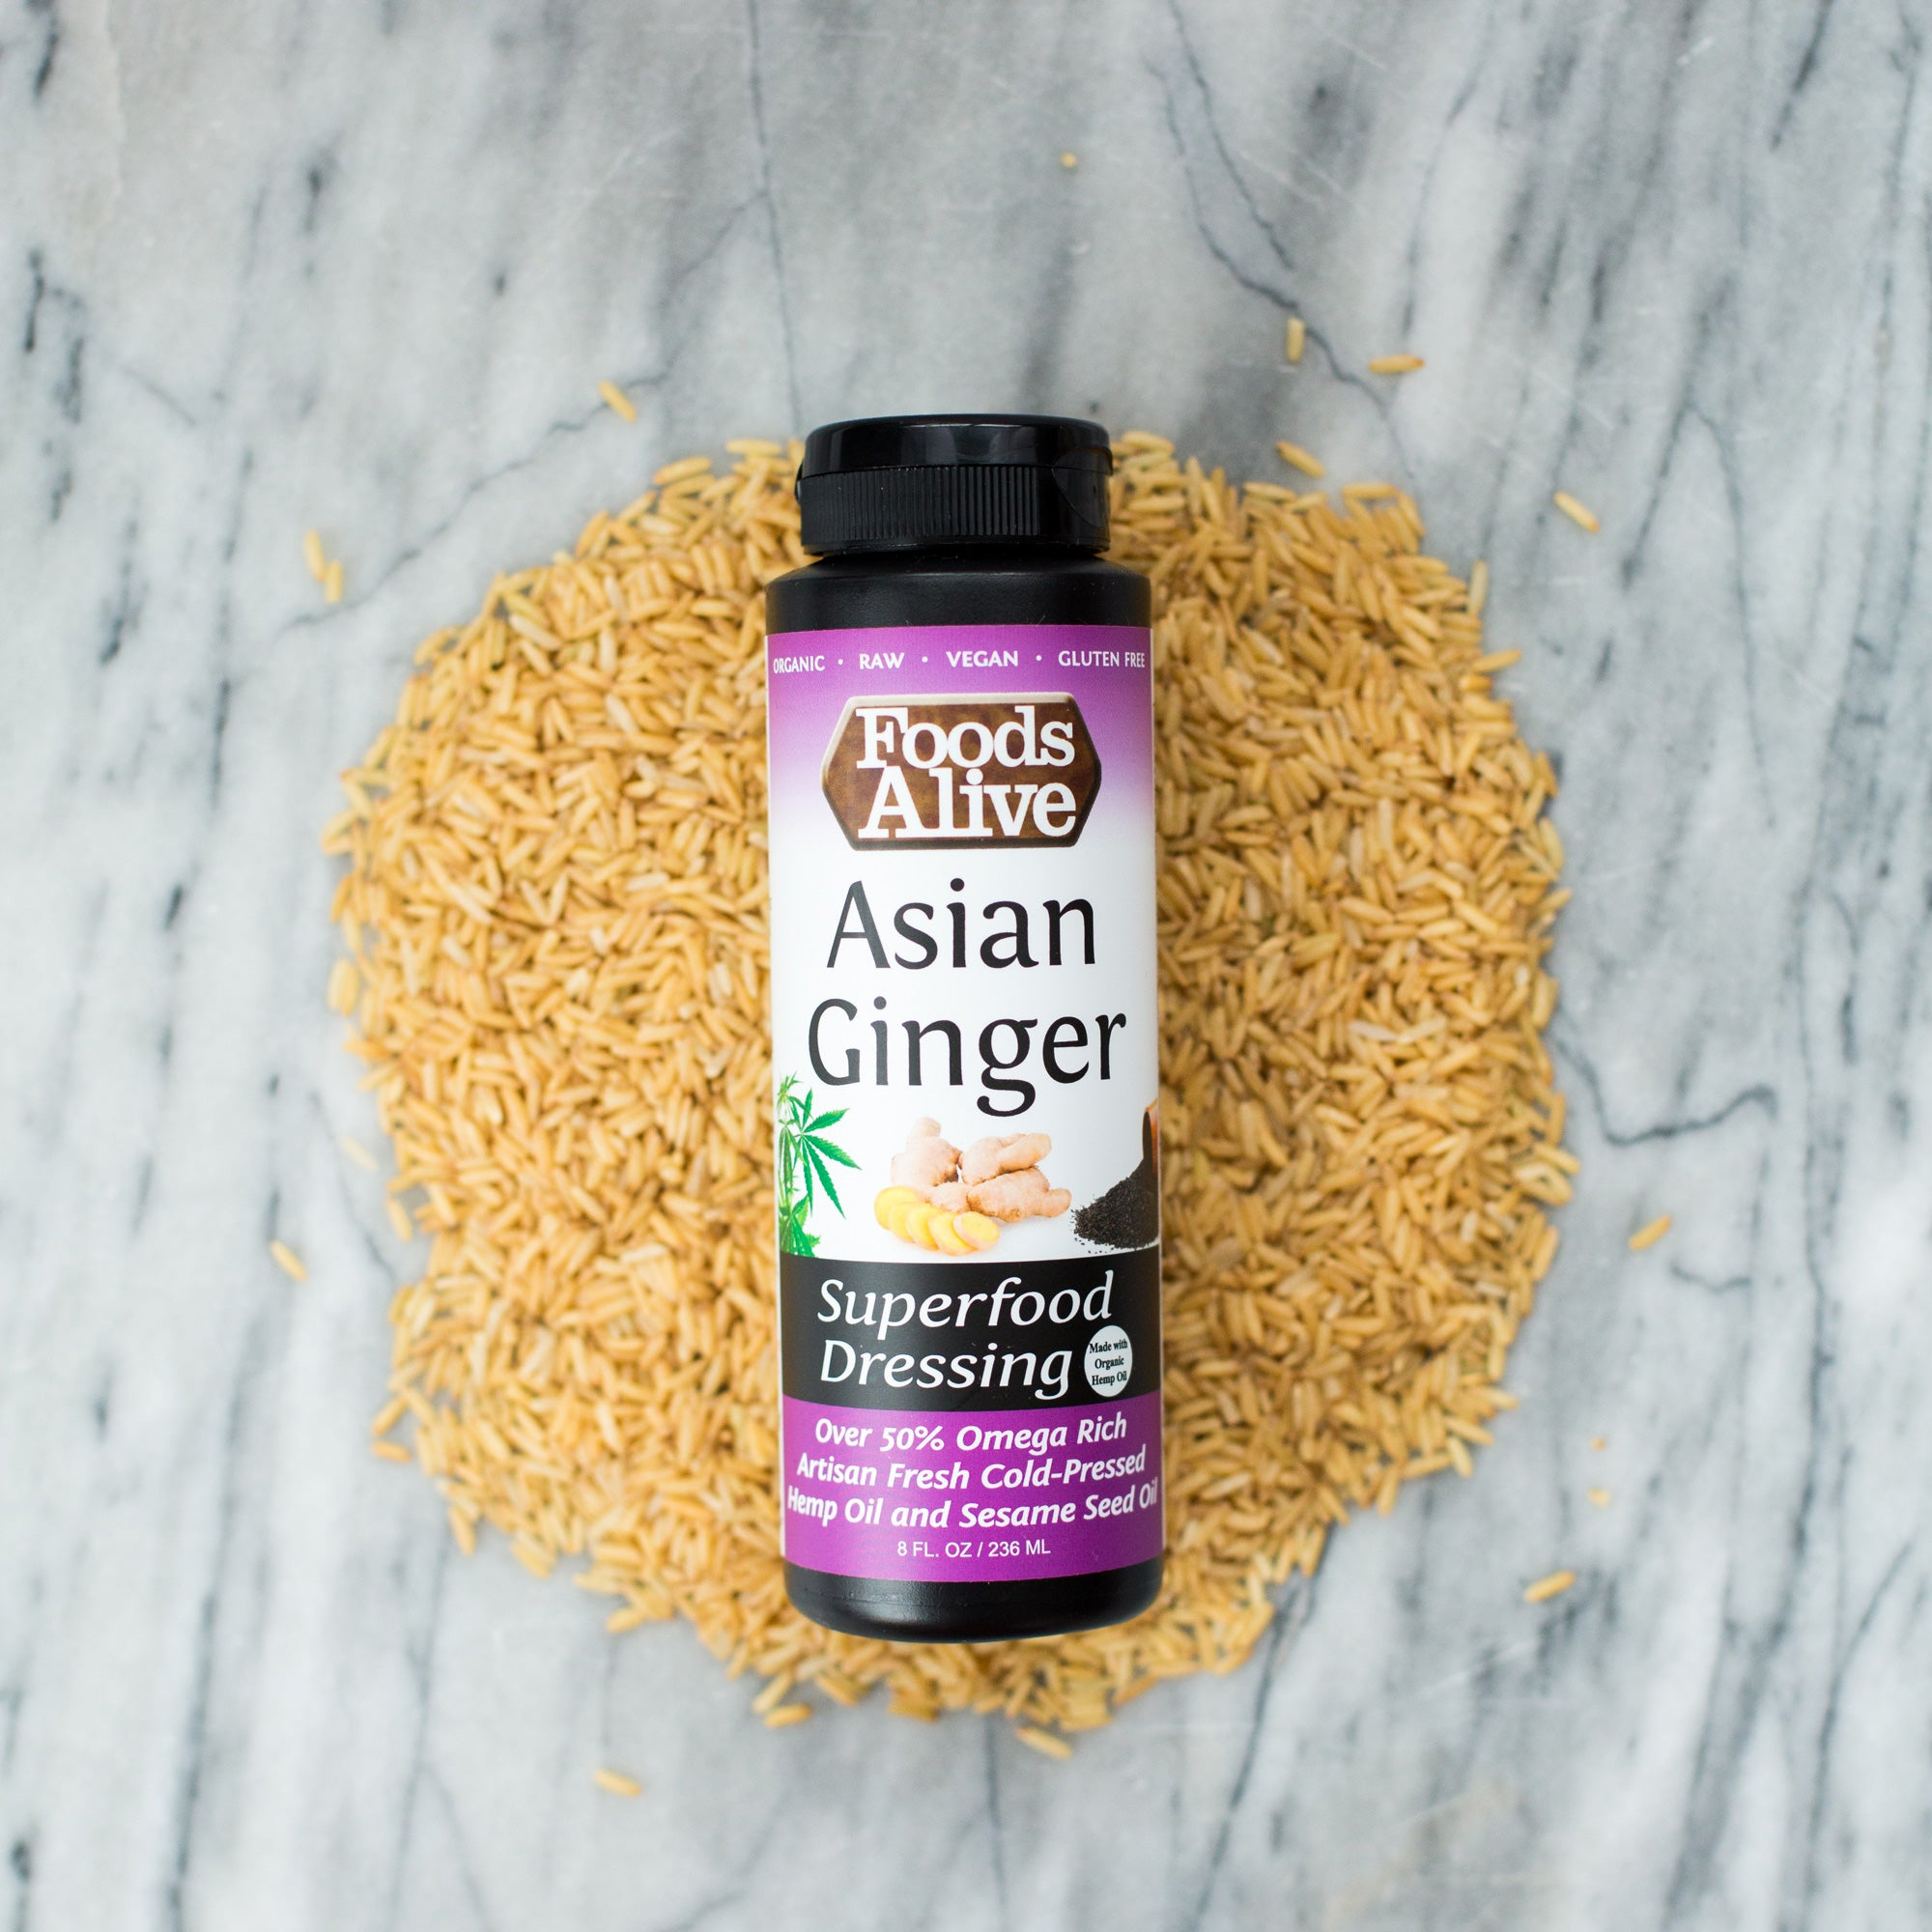 Organic Asian Ginger Salad Dressing | Artisan, Cold-Pressed Black Sesame & Hemp Oils | Raw, Vegan, Gluten Free, Kosher, Non-GMO | Foods Alive